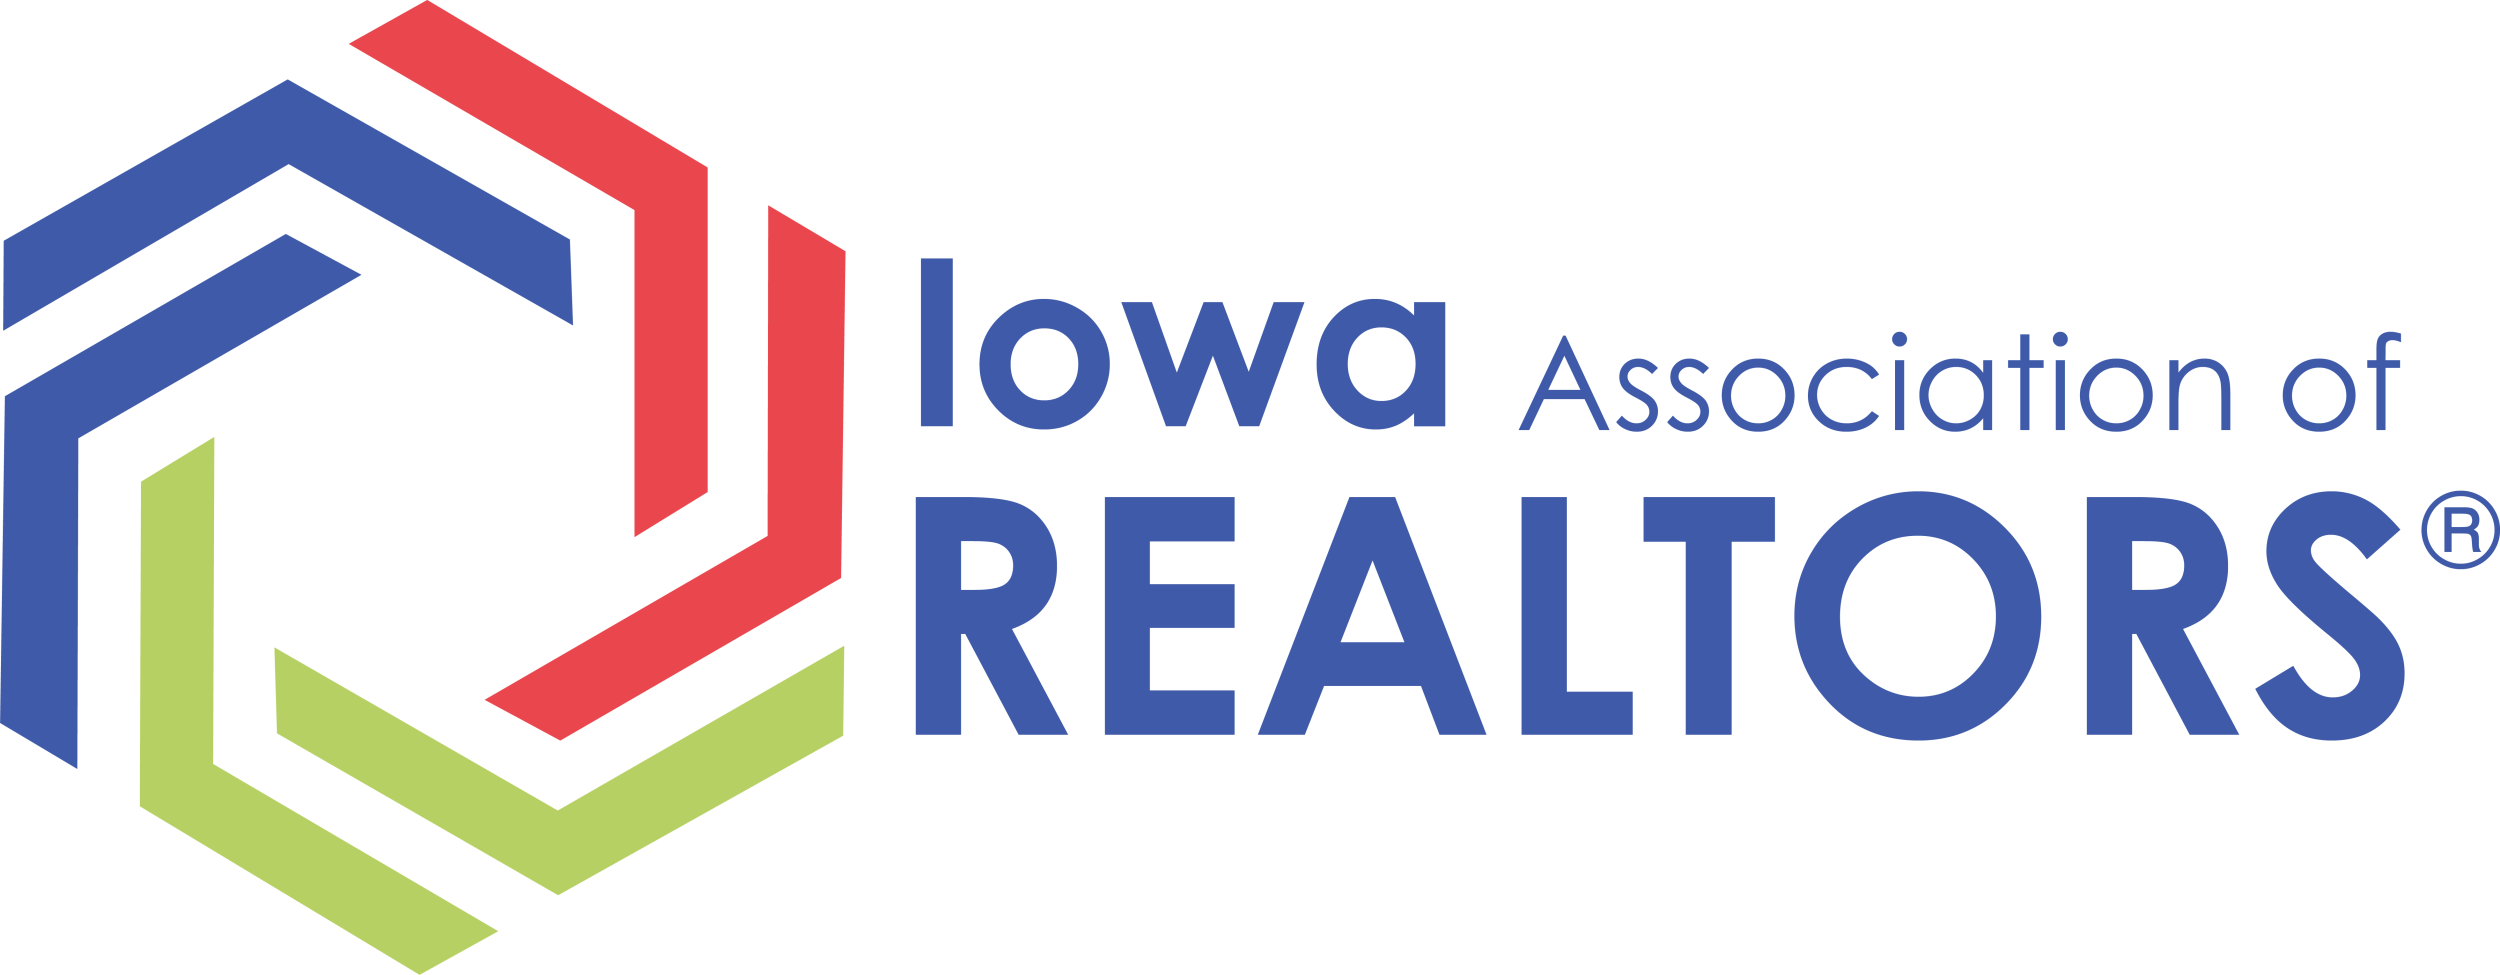 Iowa Association of Realtors